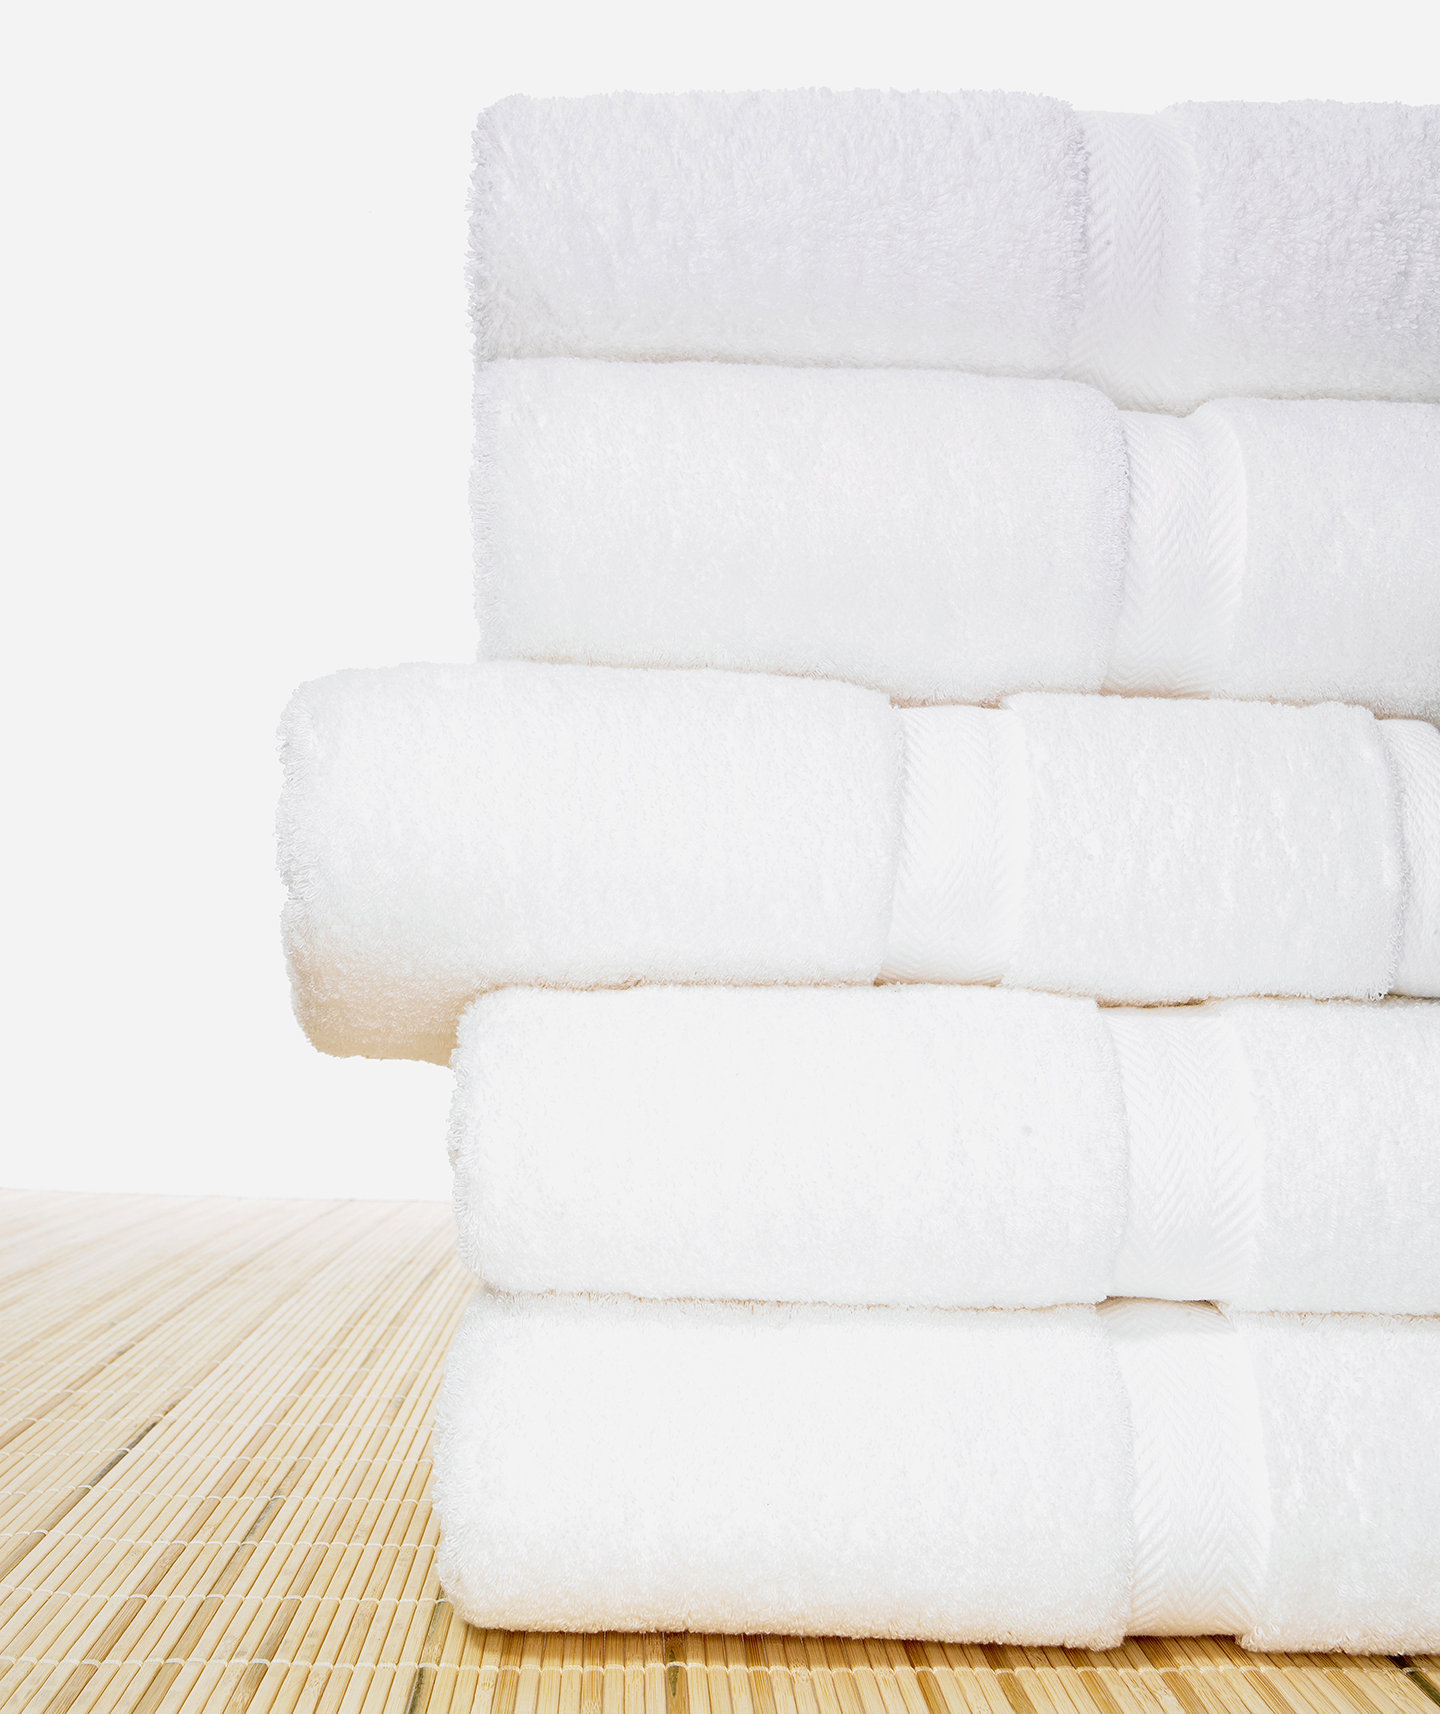 stack-white-folded-towels-bamboo